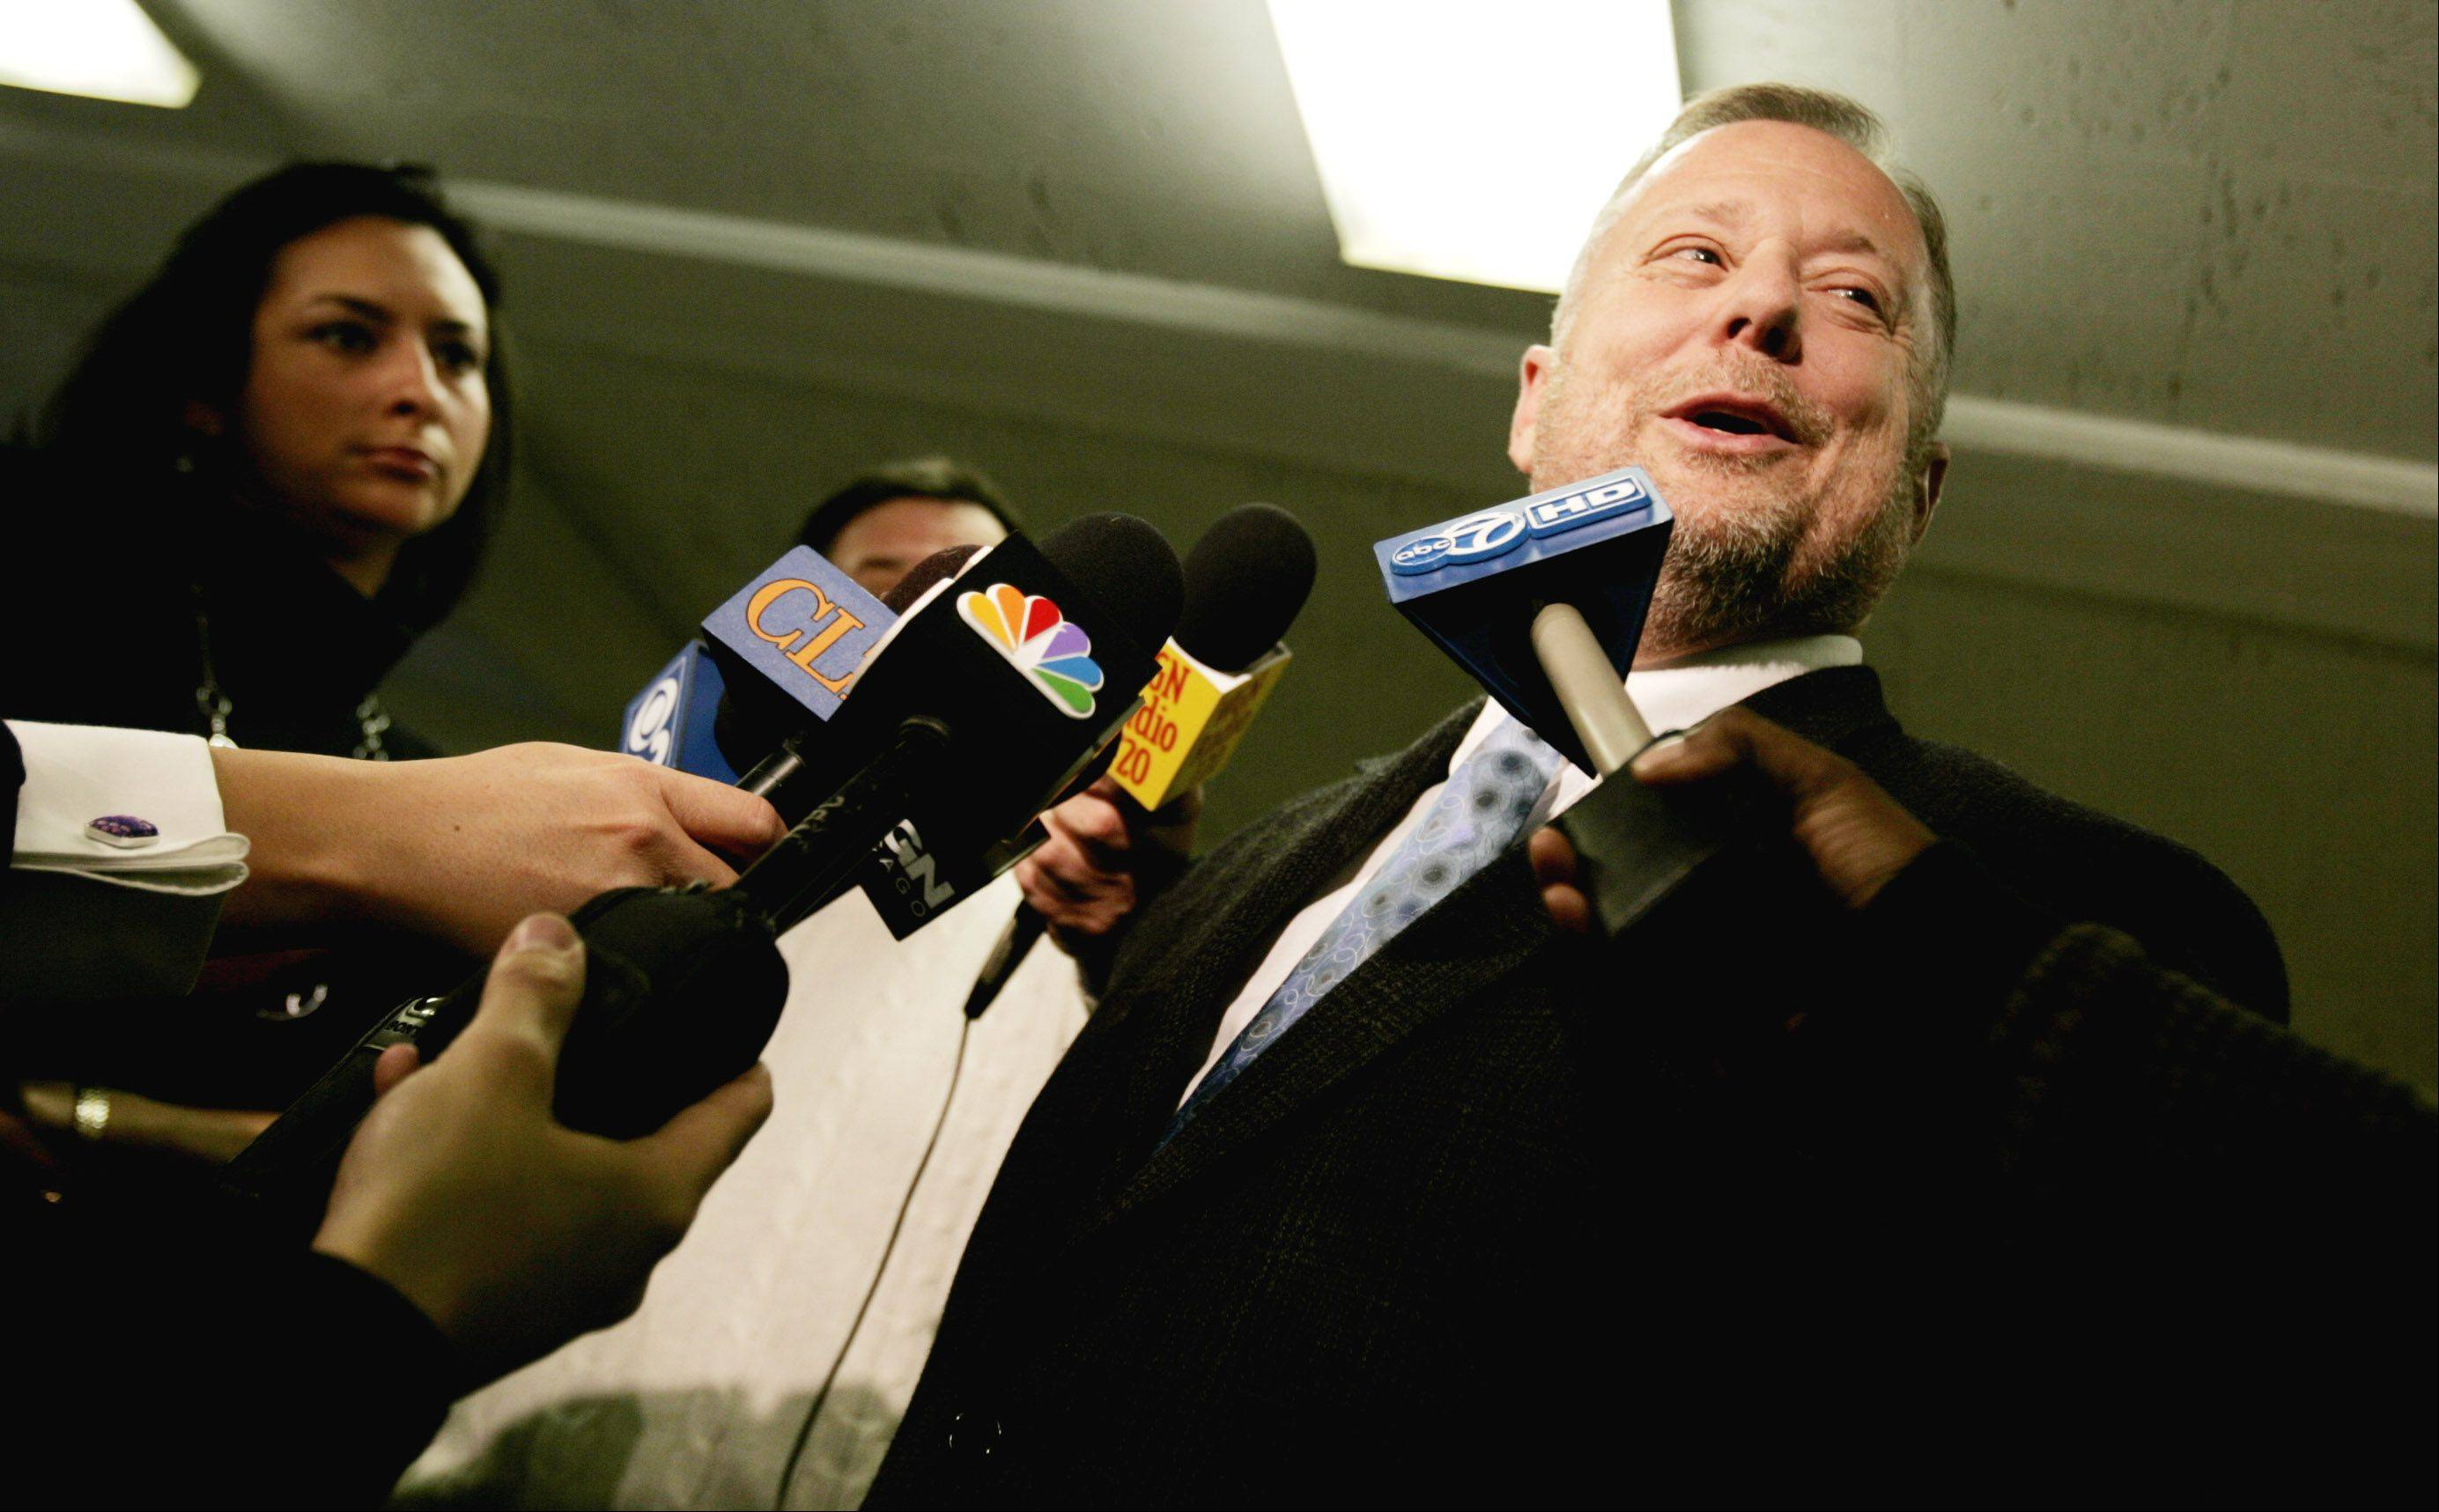 Pastor Robert Hatfield of First Church of Lombard talks to reporters in 2007 after the death of Lombard resident Rose Tani, mother of NASA astronaut Dan Tani.